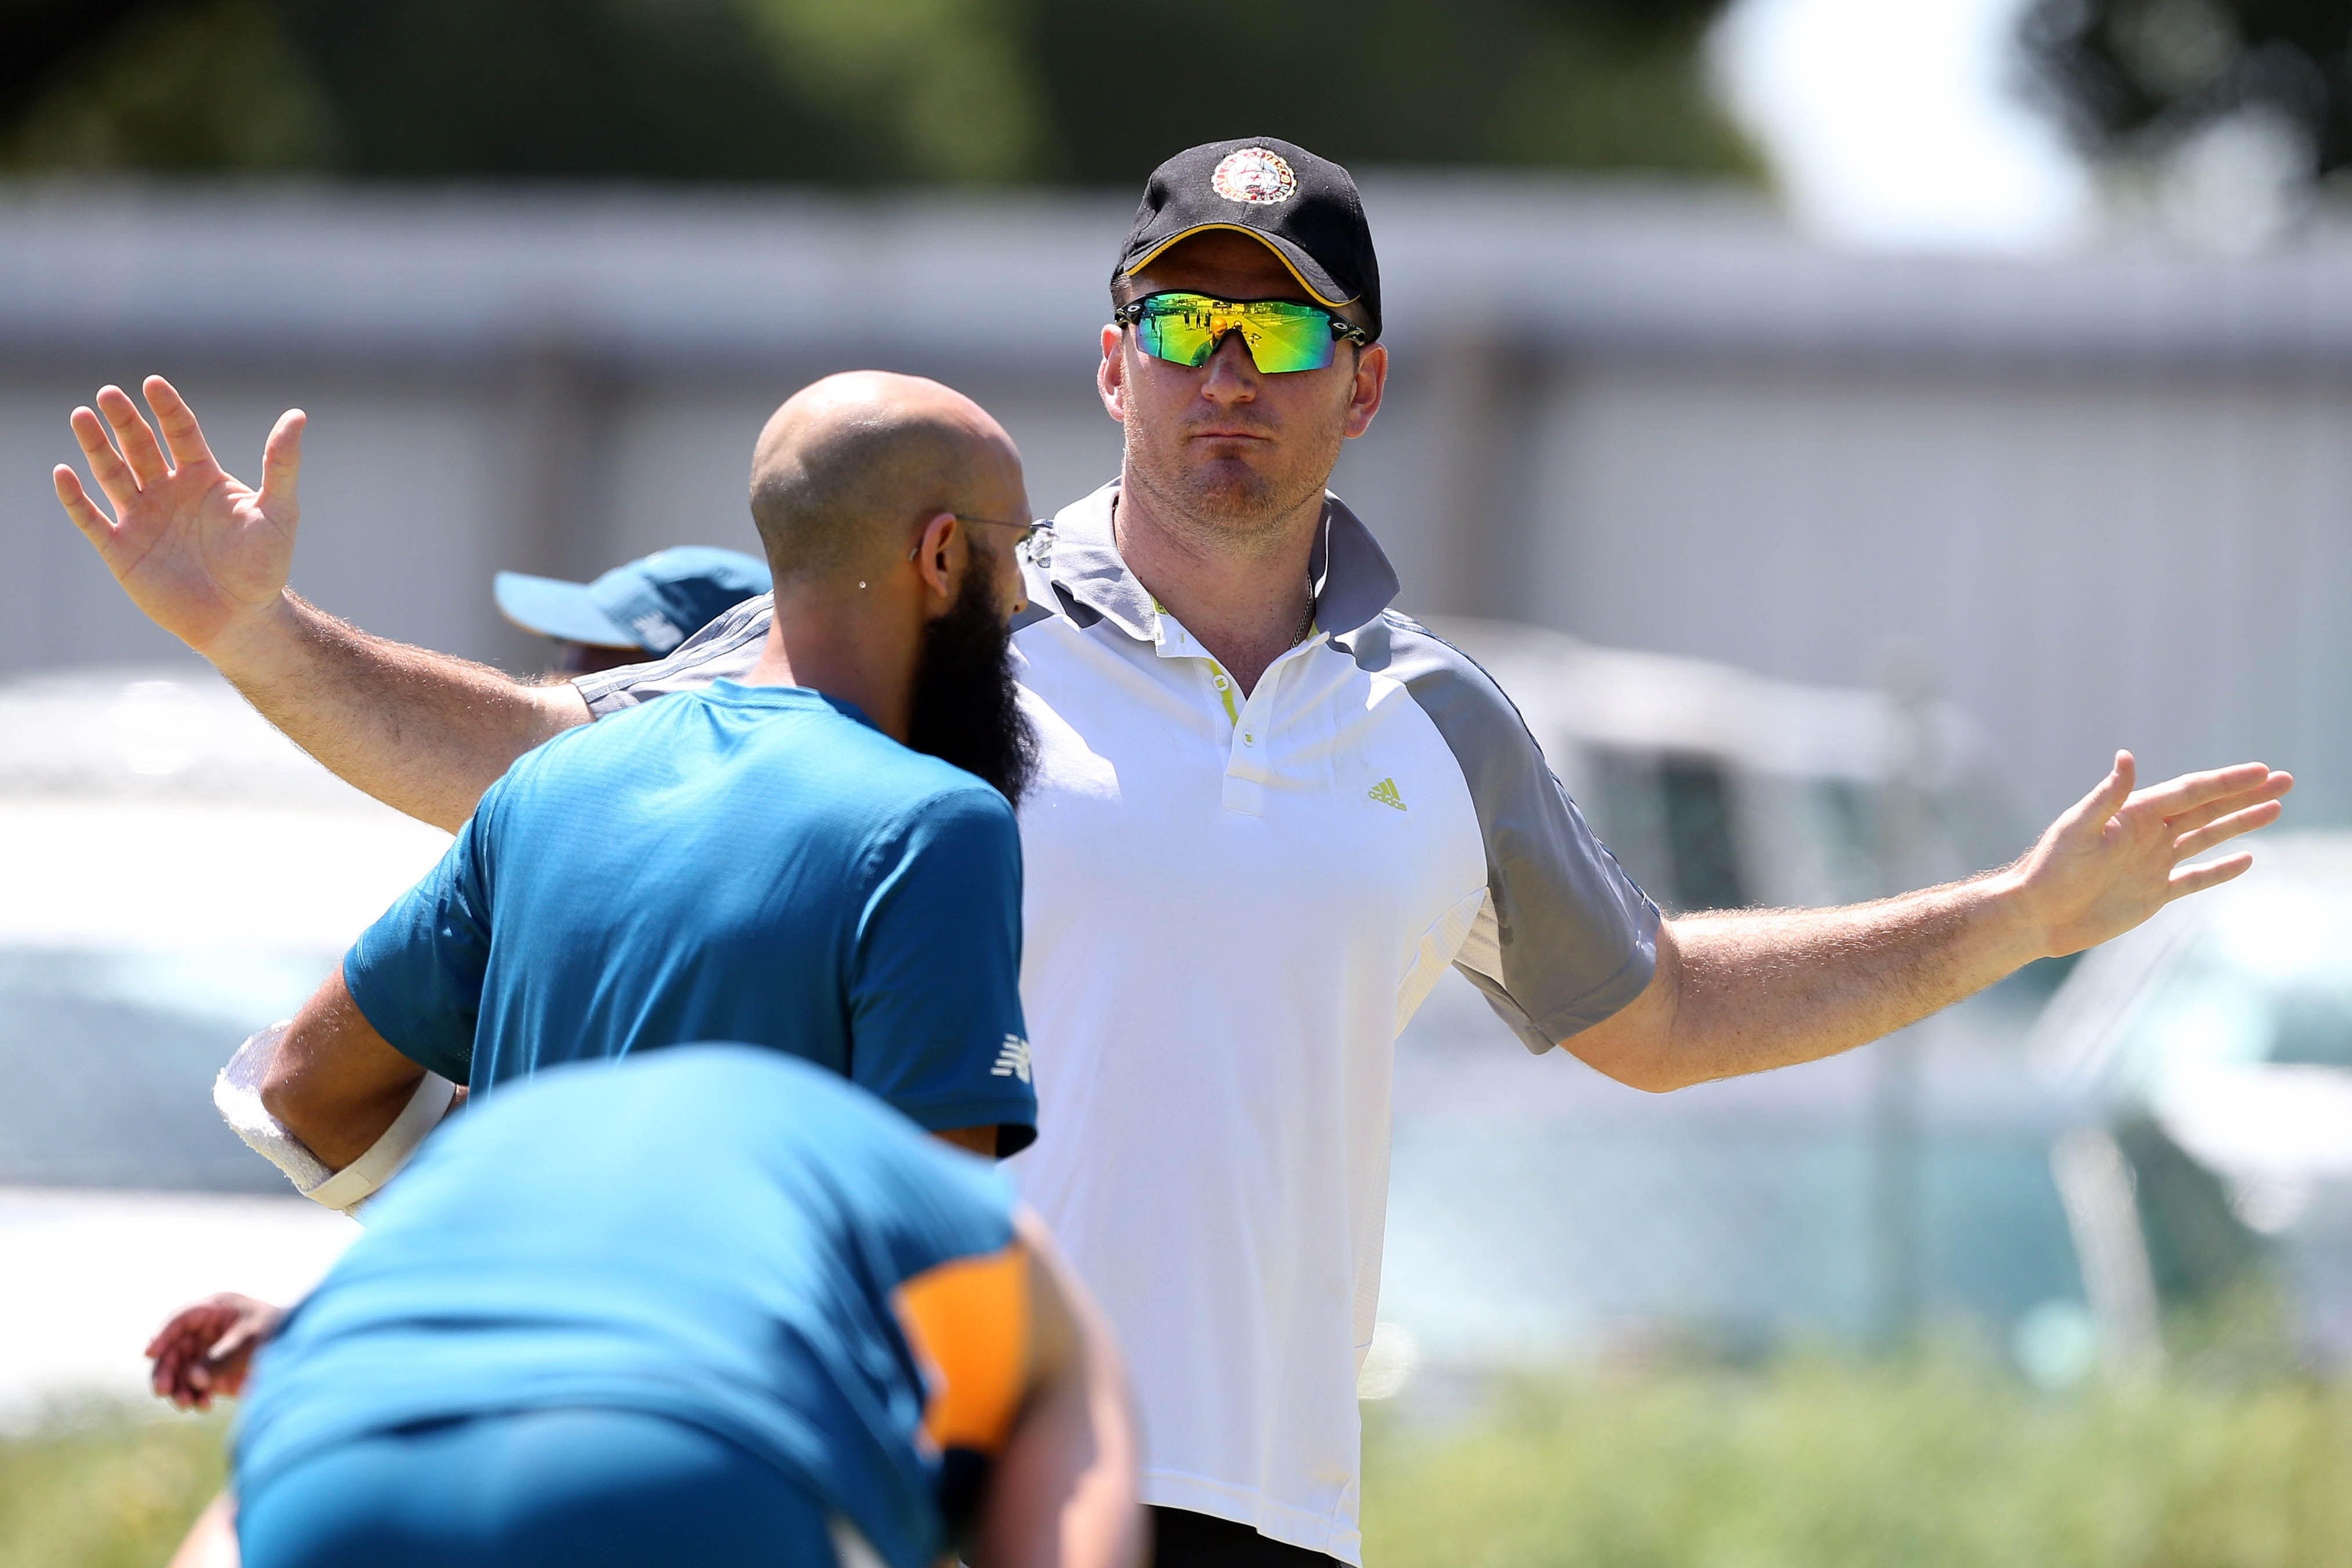 1 January 2019: Graeme Smith, in cap and sunglasses, talking to Hashim Amla during a South African national cricket team training session in Cape Town. (Photograph by Carl Fourie/Gallo Images)